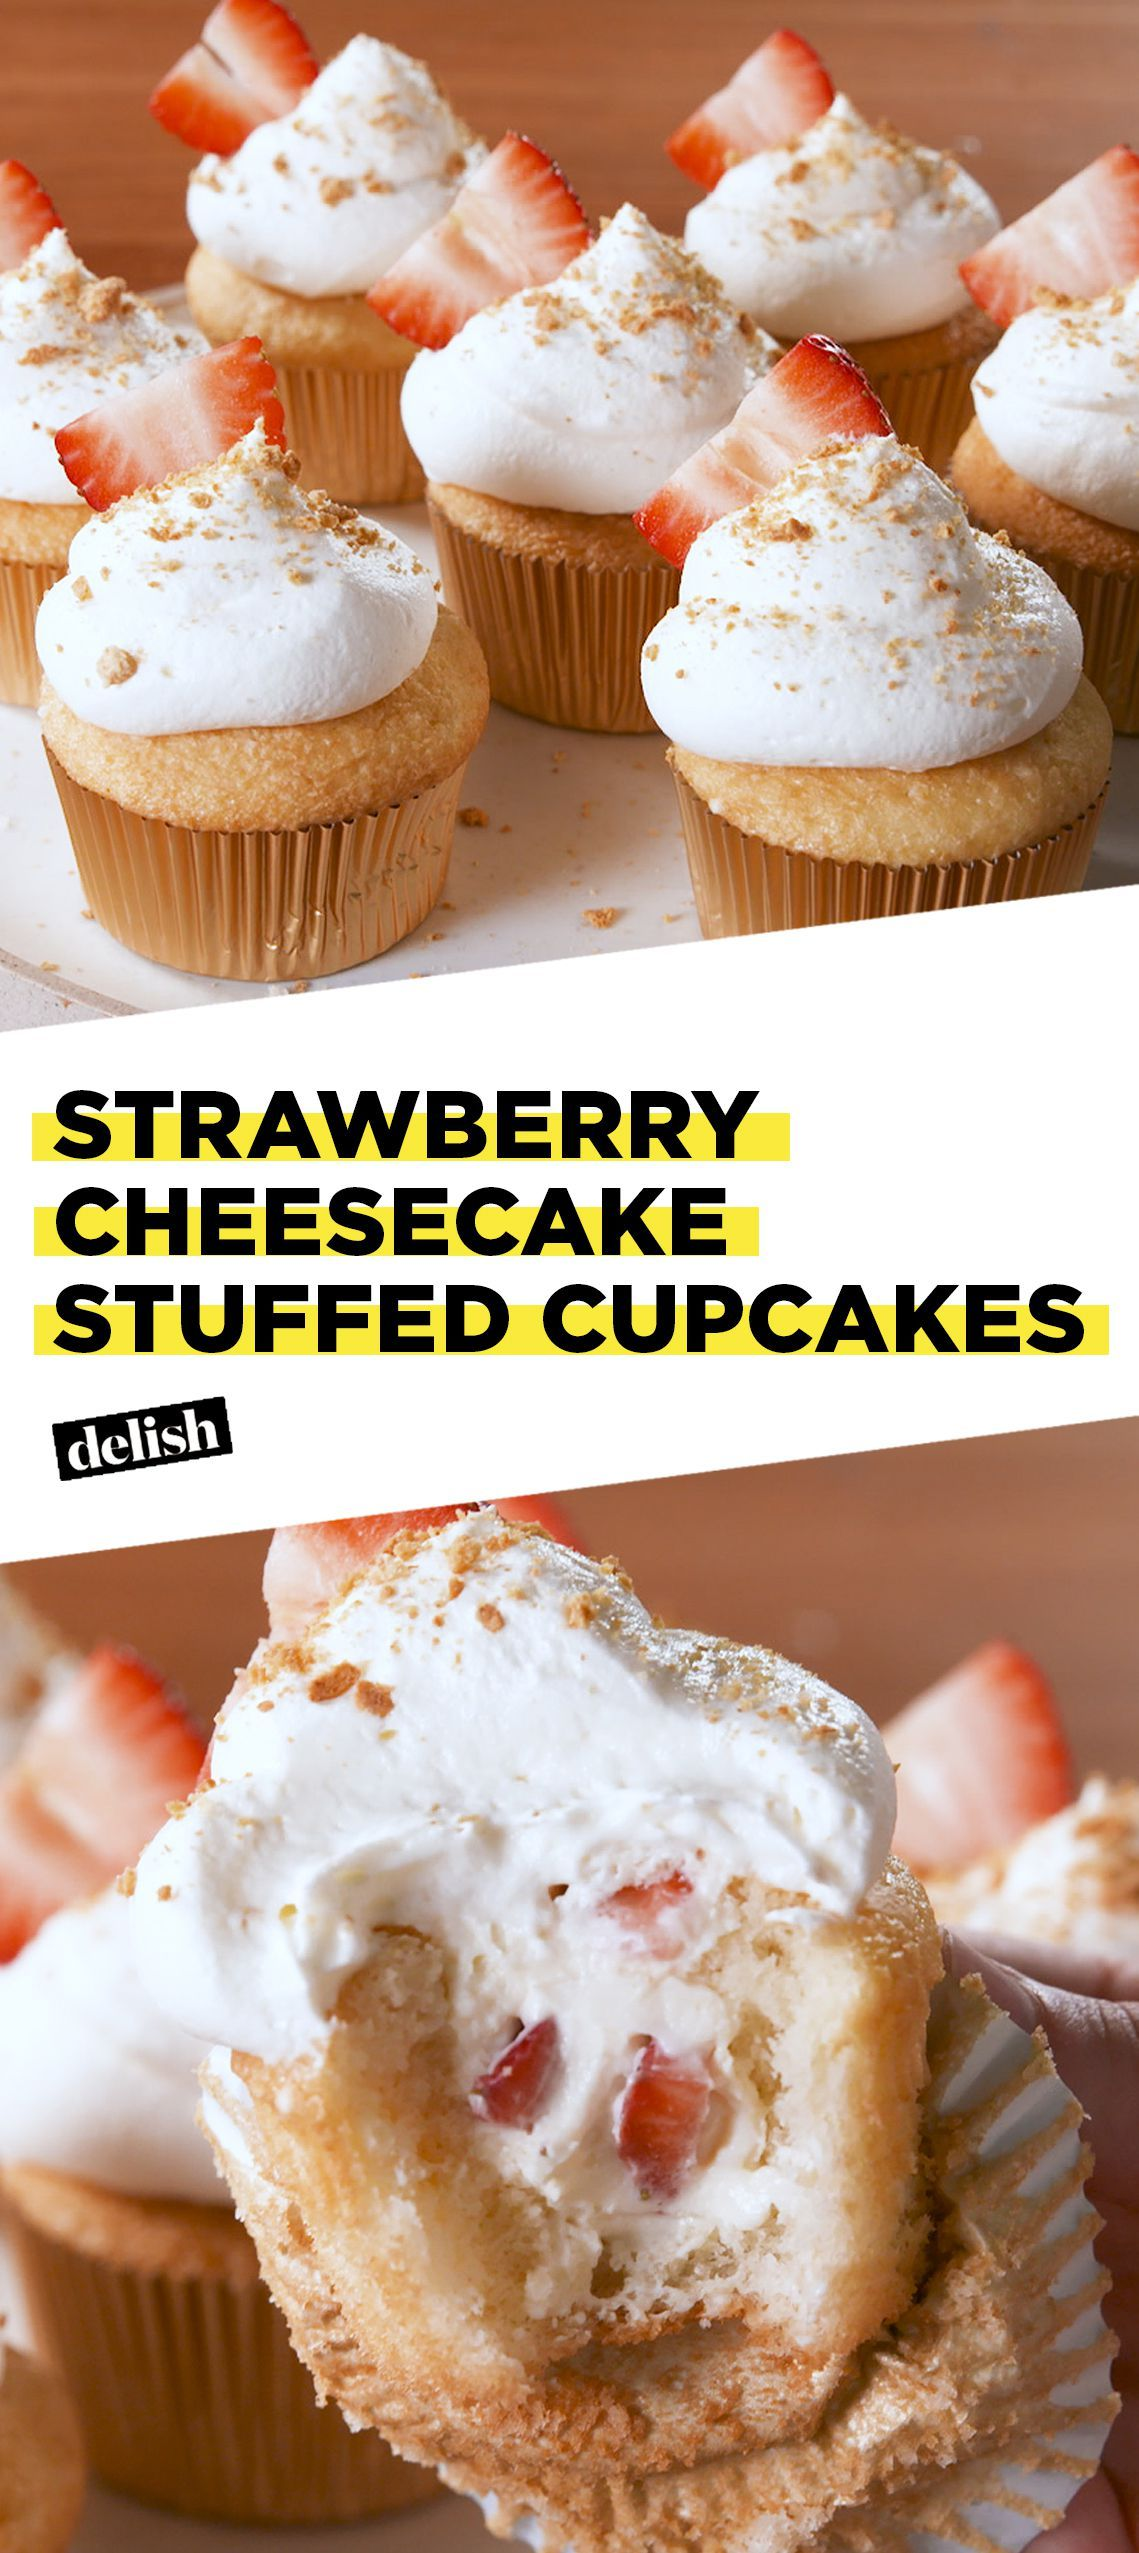 Strawberry Cheesecake Stuffed Cupcakes Recipe Cupcake Recipes